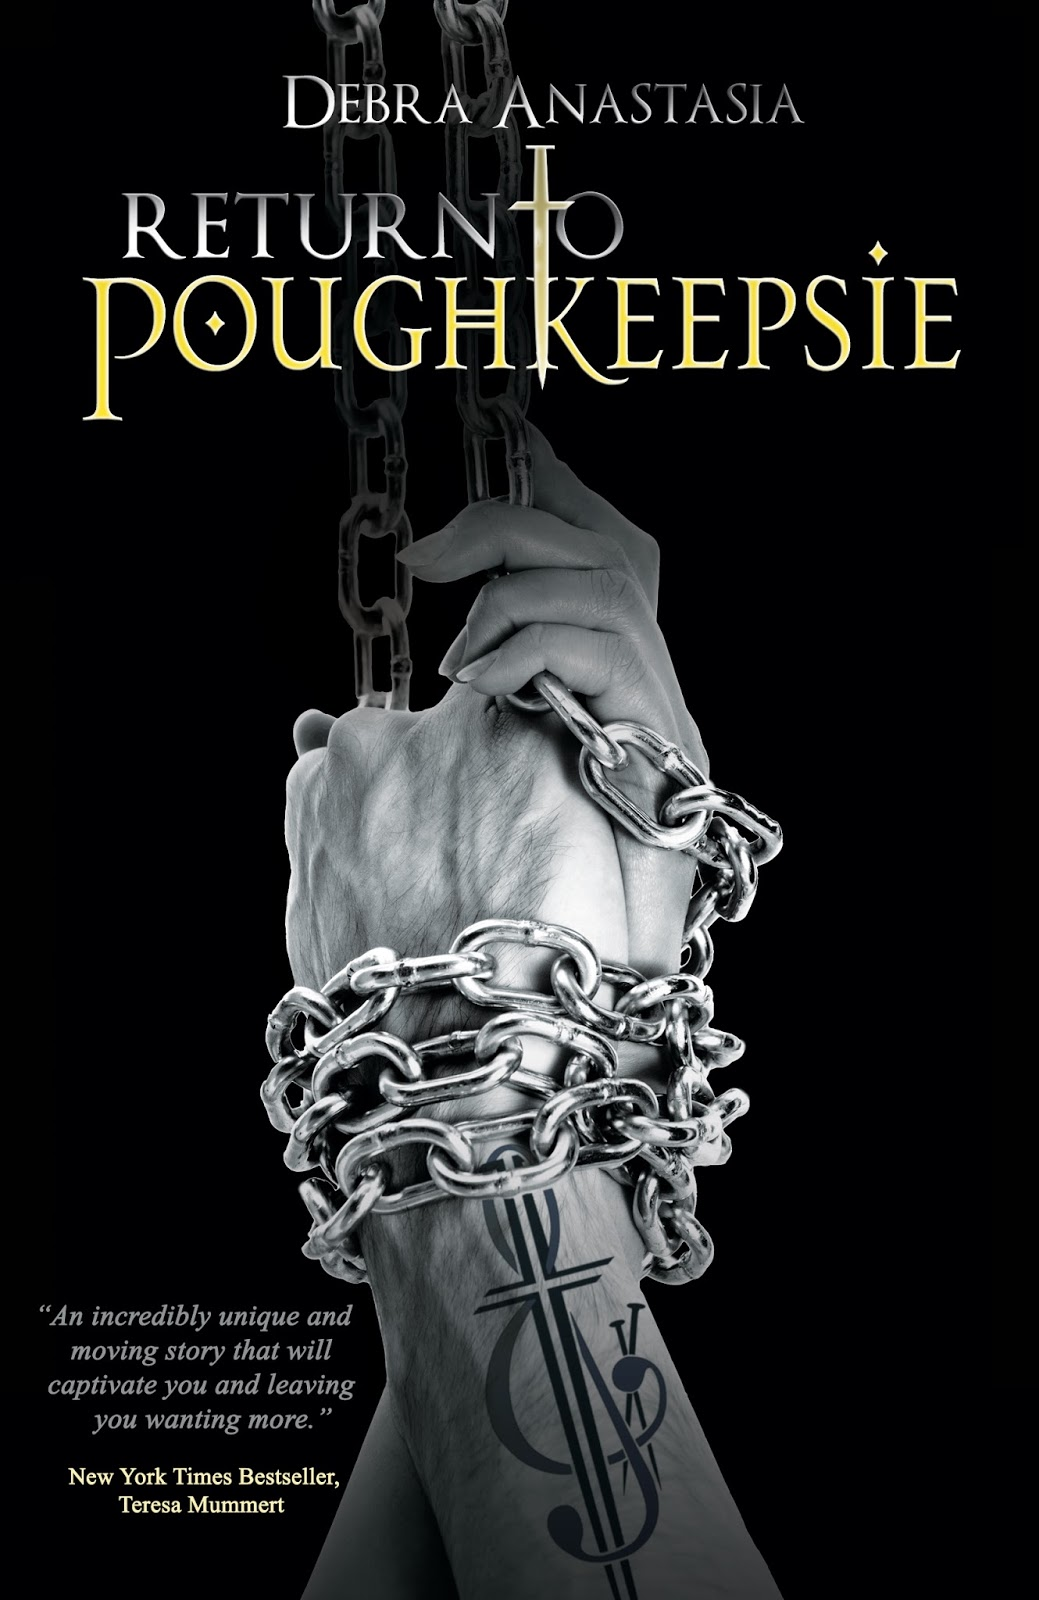 http://www.amazon.com/Return-Poughkeepsie-Debra-Anastasia-ebook/dp/B00NO138WO/ref=tmm_kin_swatch_0?_encoding=UTF8&sr=1-2&qid=1412954270